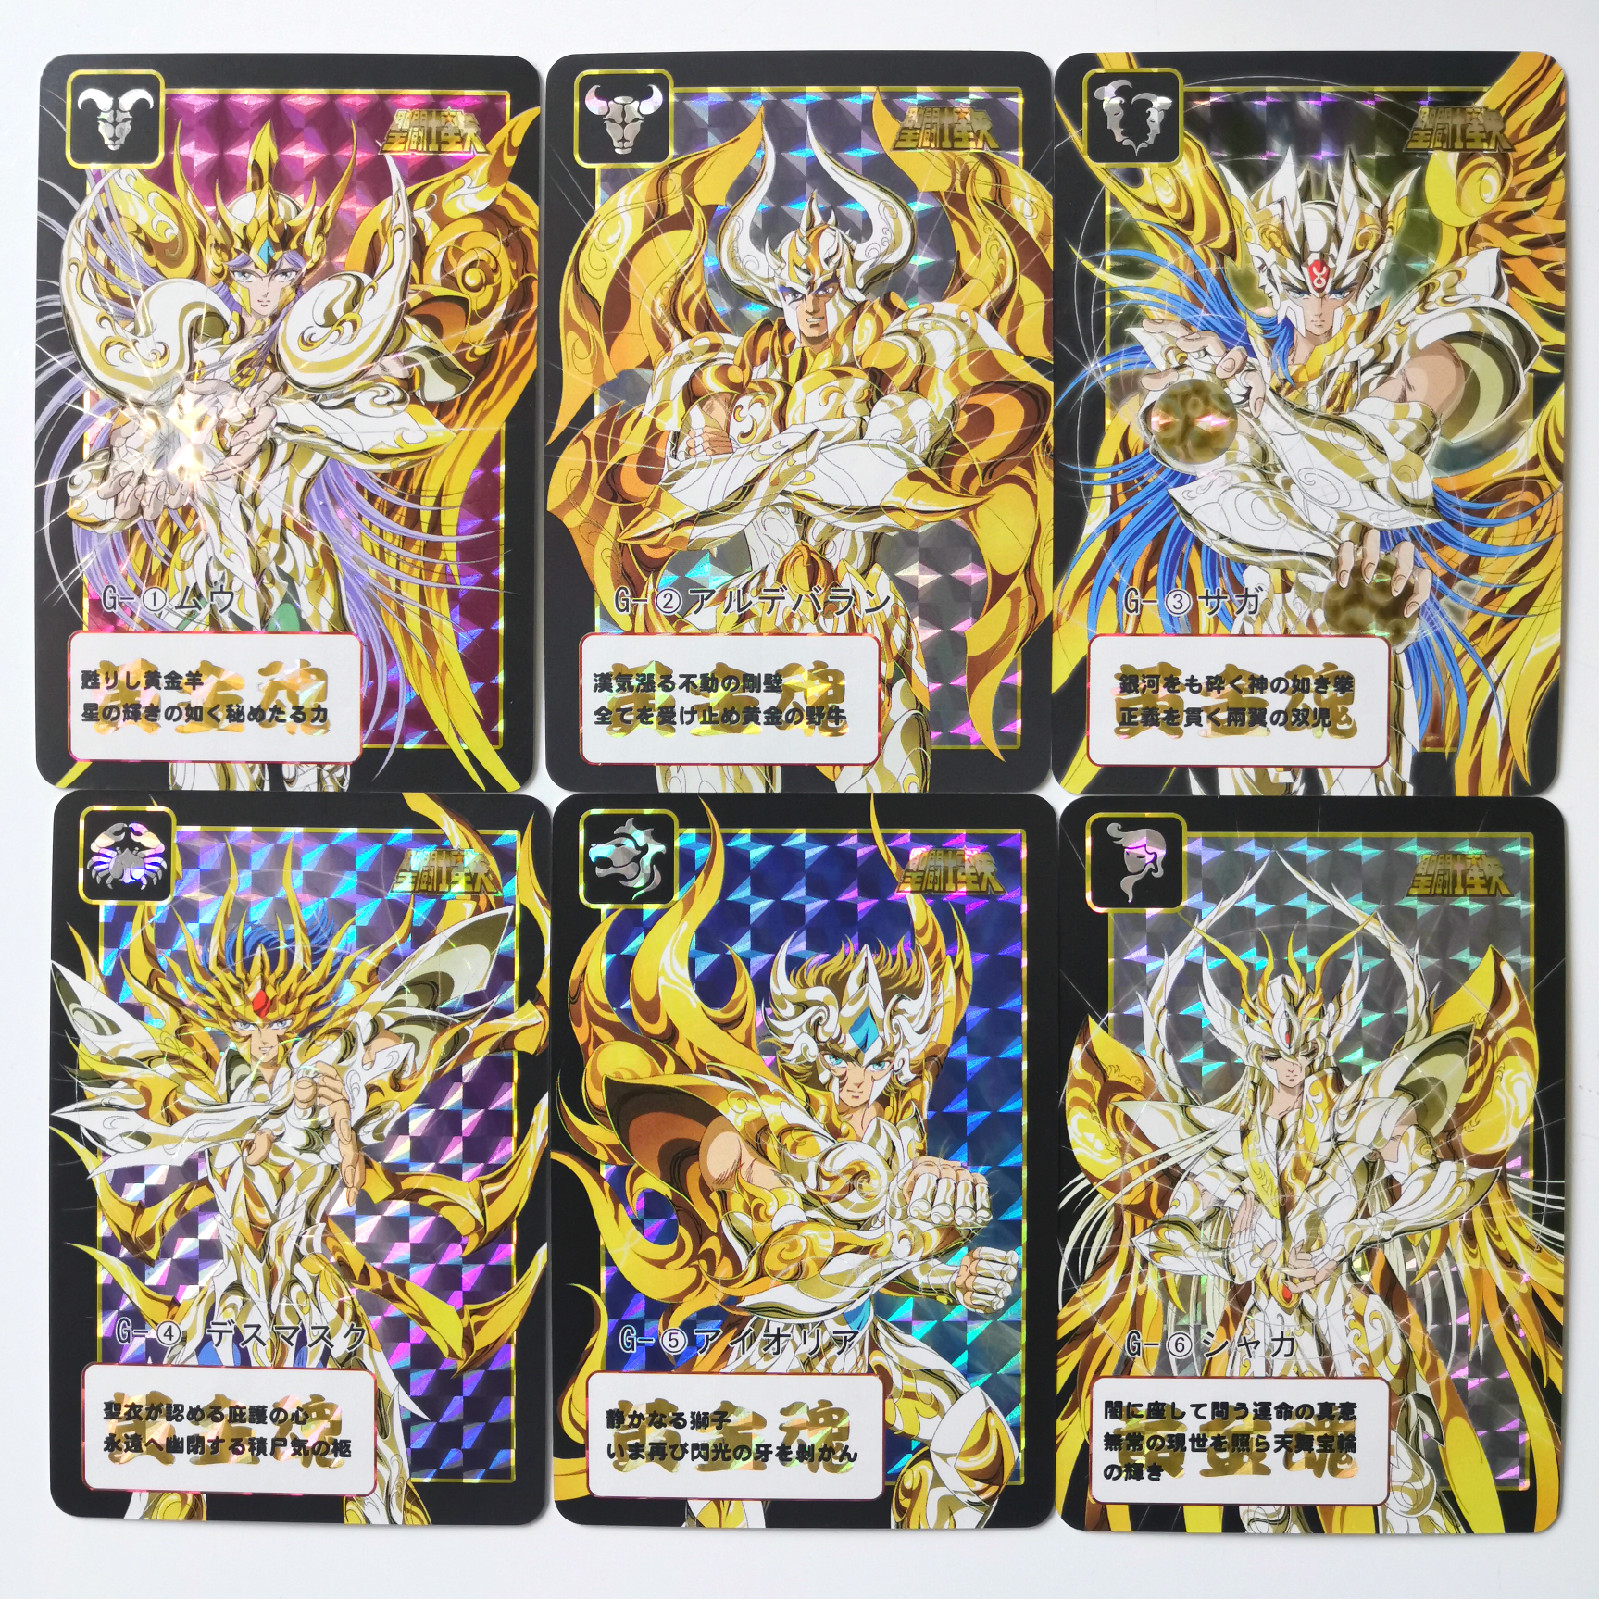 12pcs/set Saint Seiya Golden Zodiac Toys Hobbies Hobby Collectibles Game Collection Anime Cards